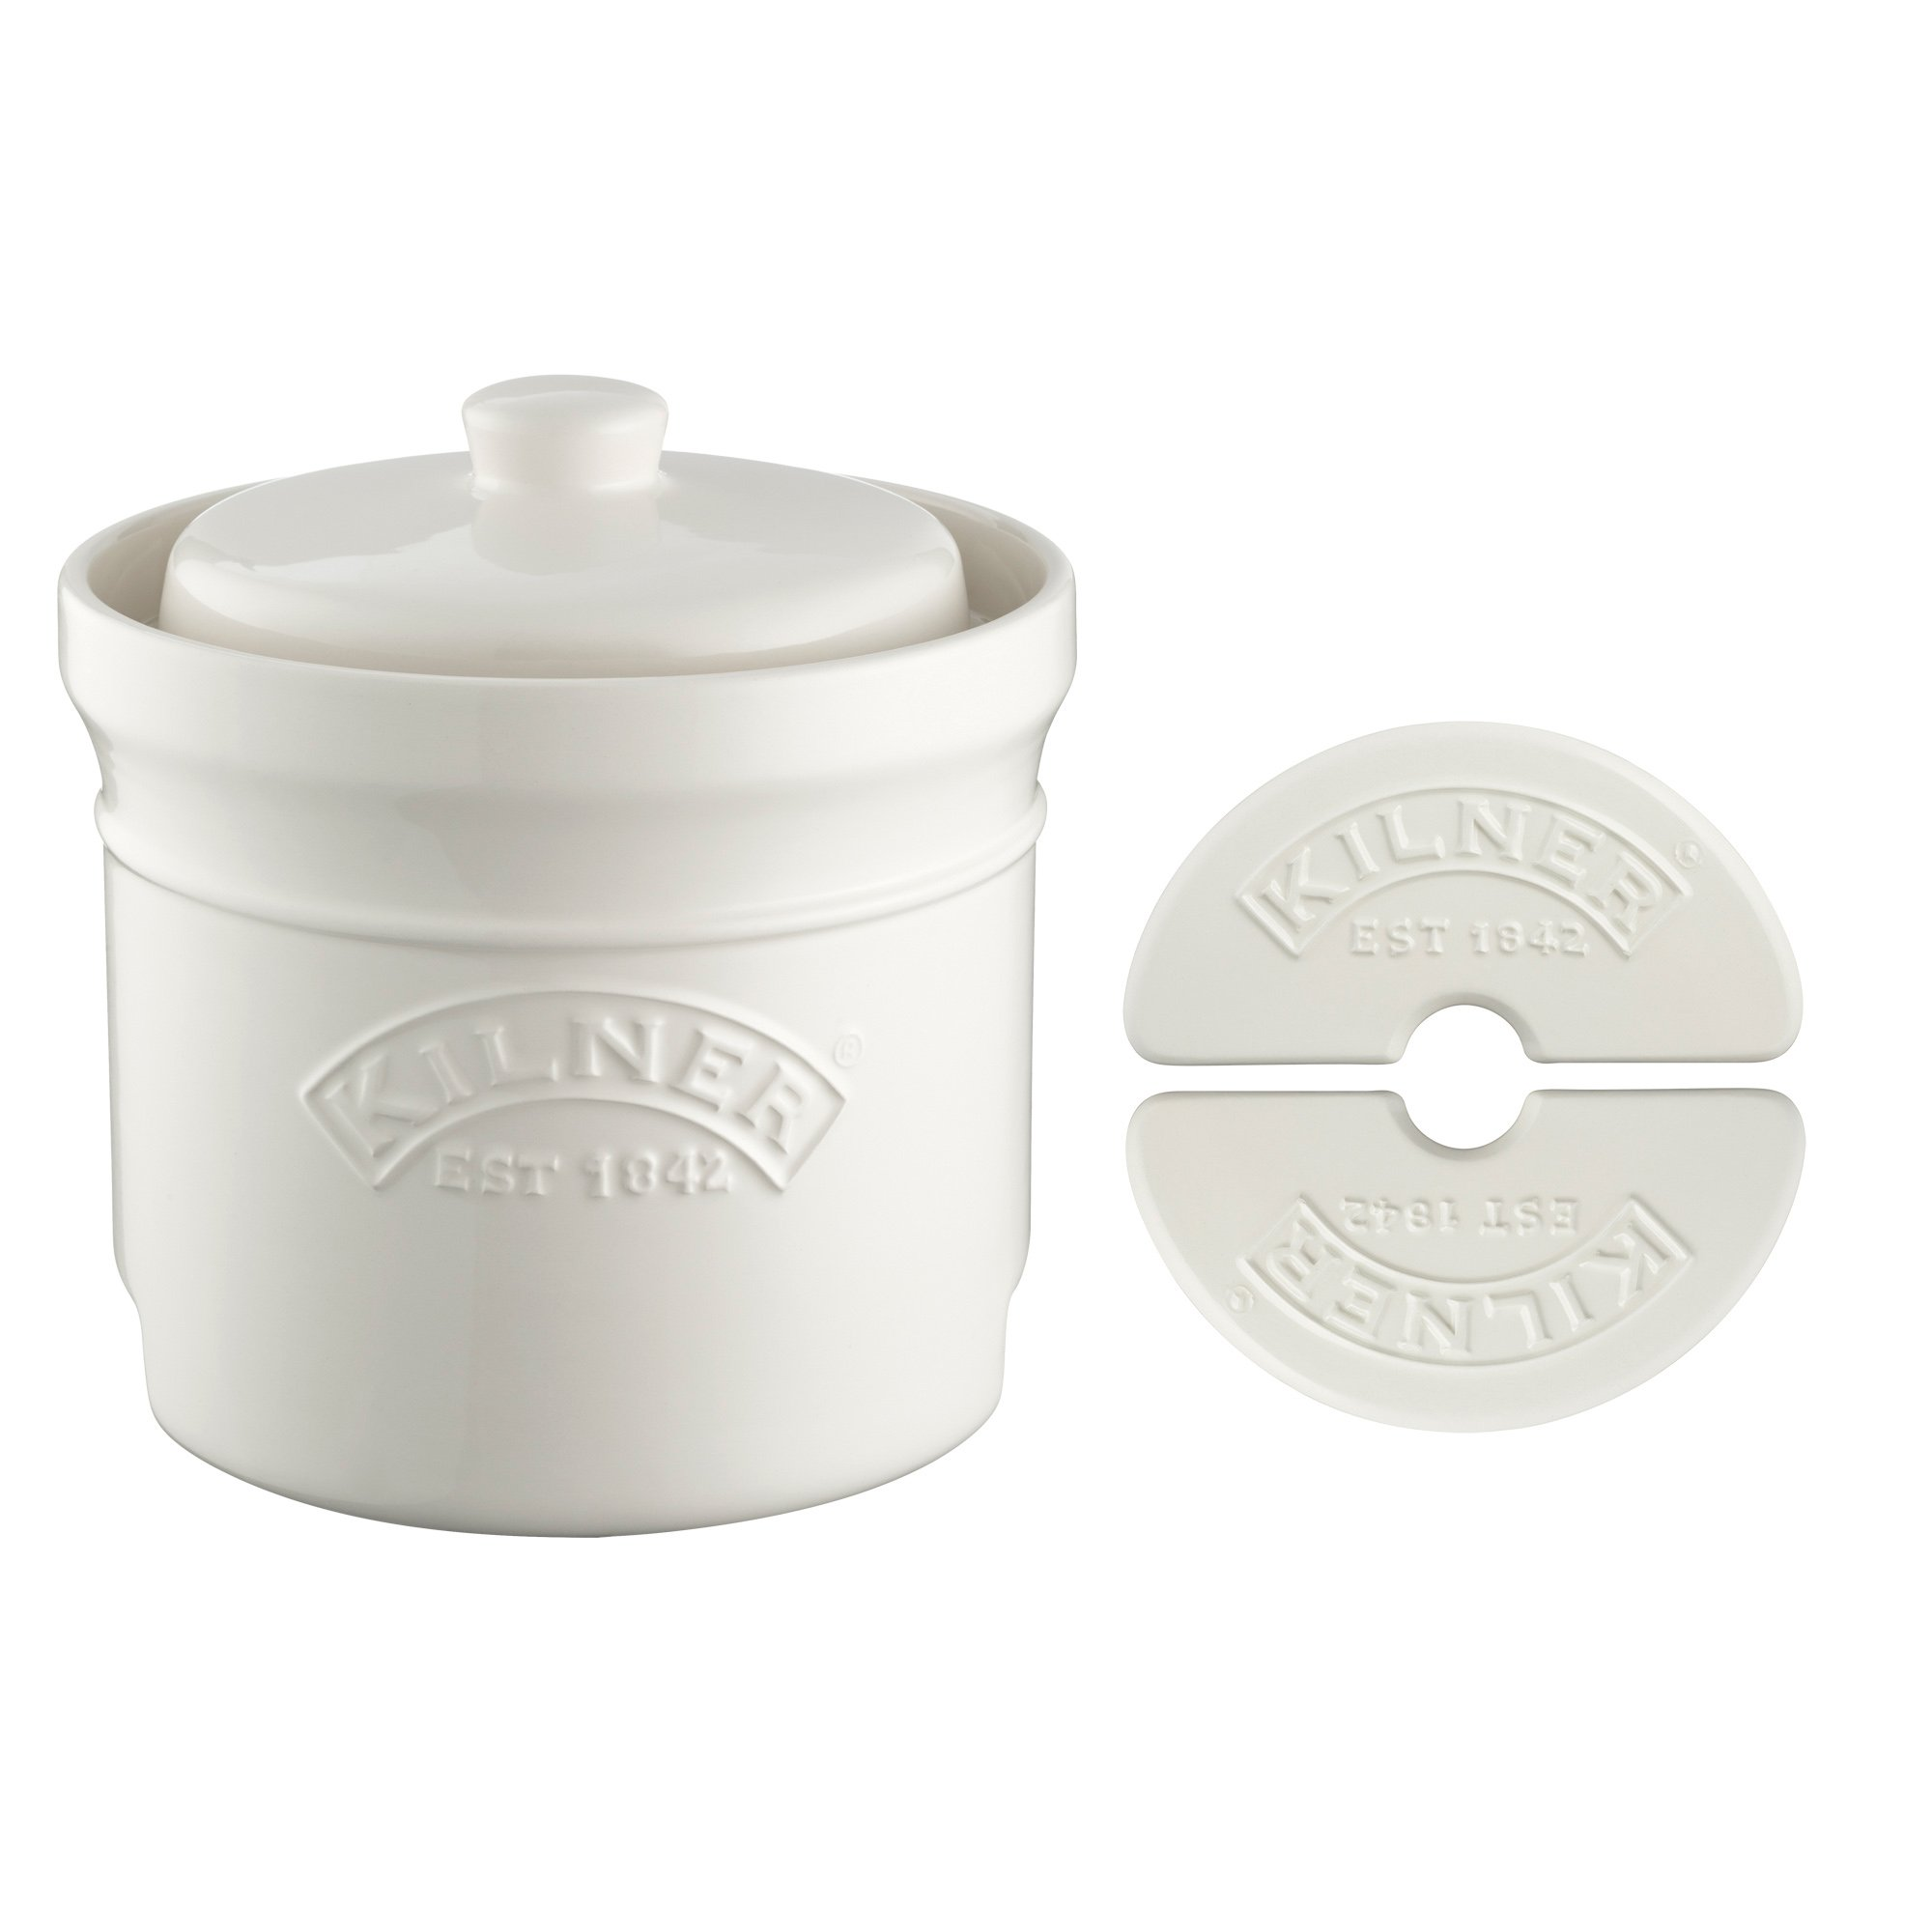 Kilner Ceramic Fermentation Crock Set, 5-piece Kit Includes 1-1/4 Gallon Fermenting Jar with Lid, Ceramic Stones and a Recipe Booklet for at Home Fermenting and Pickling